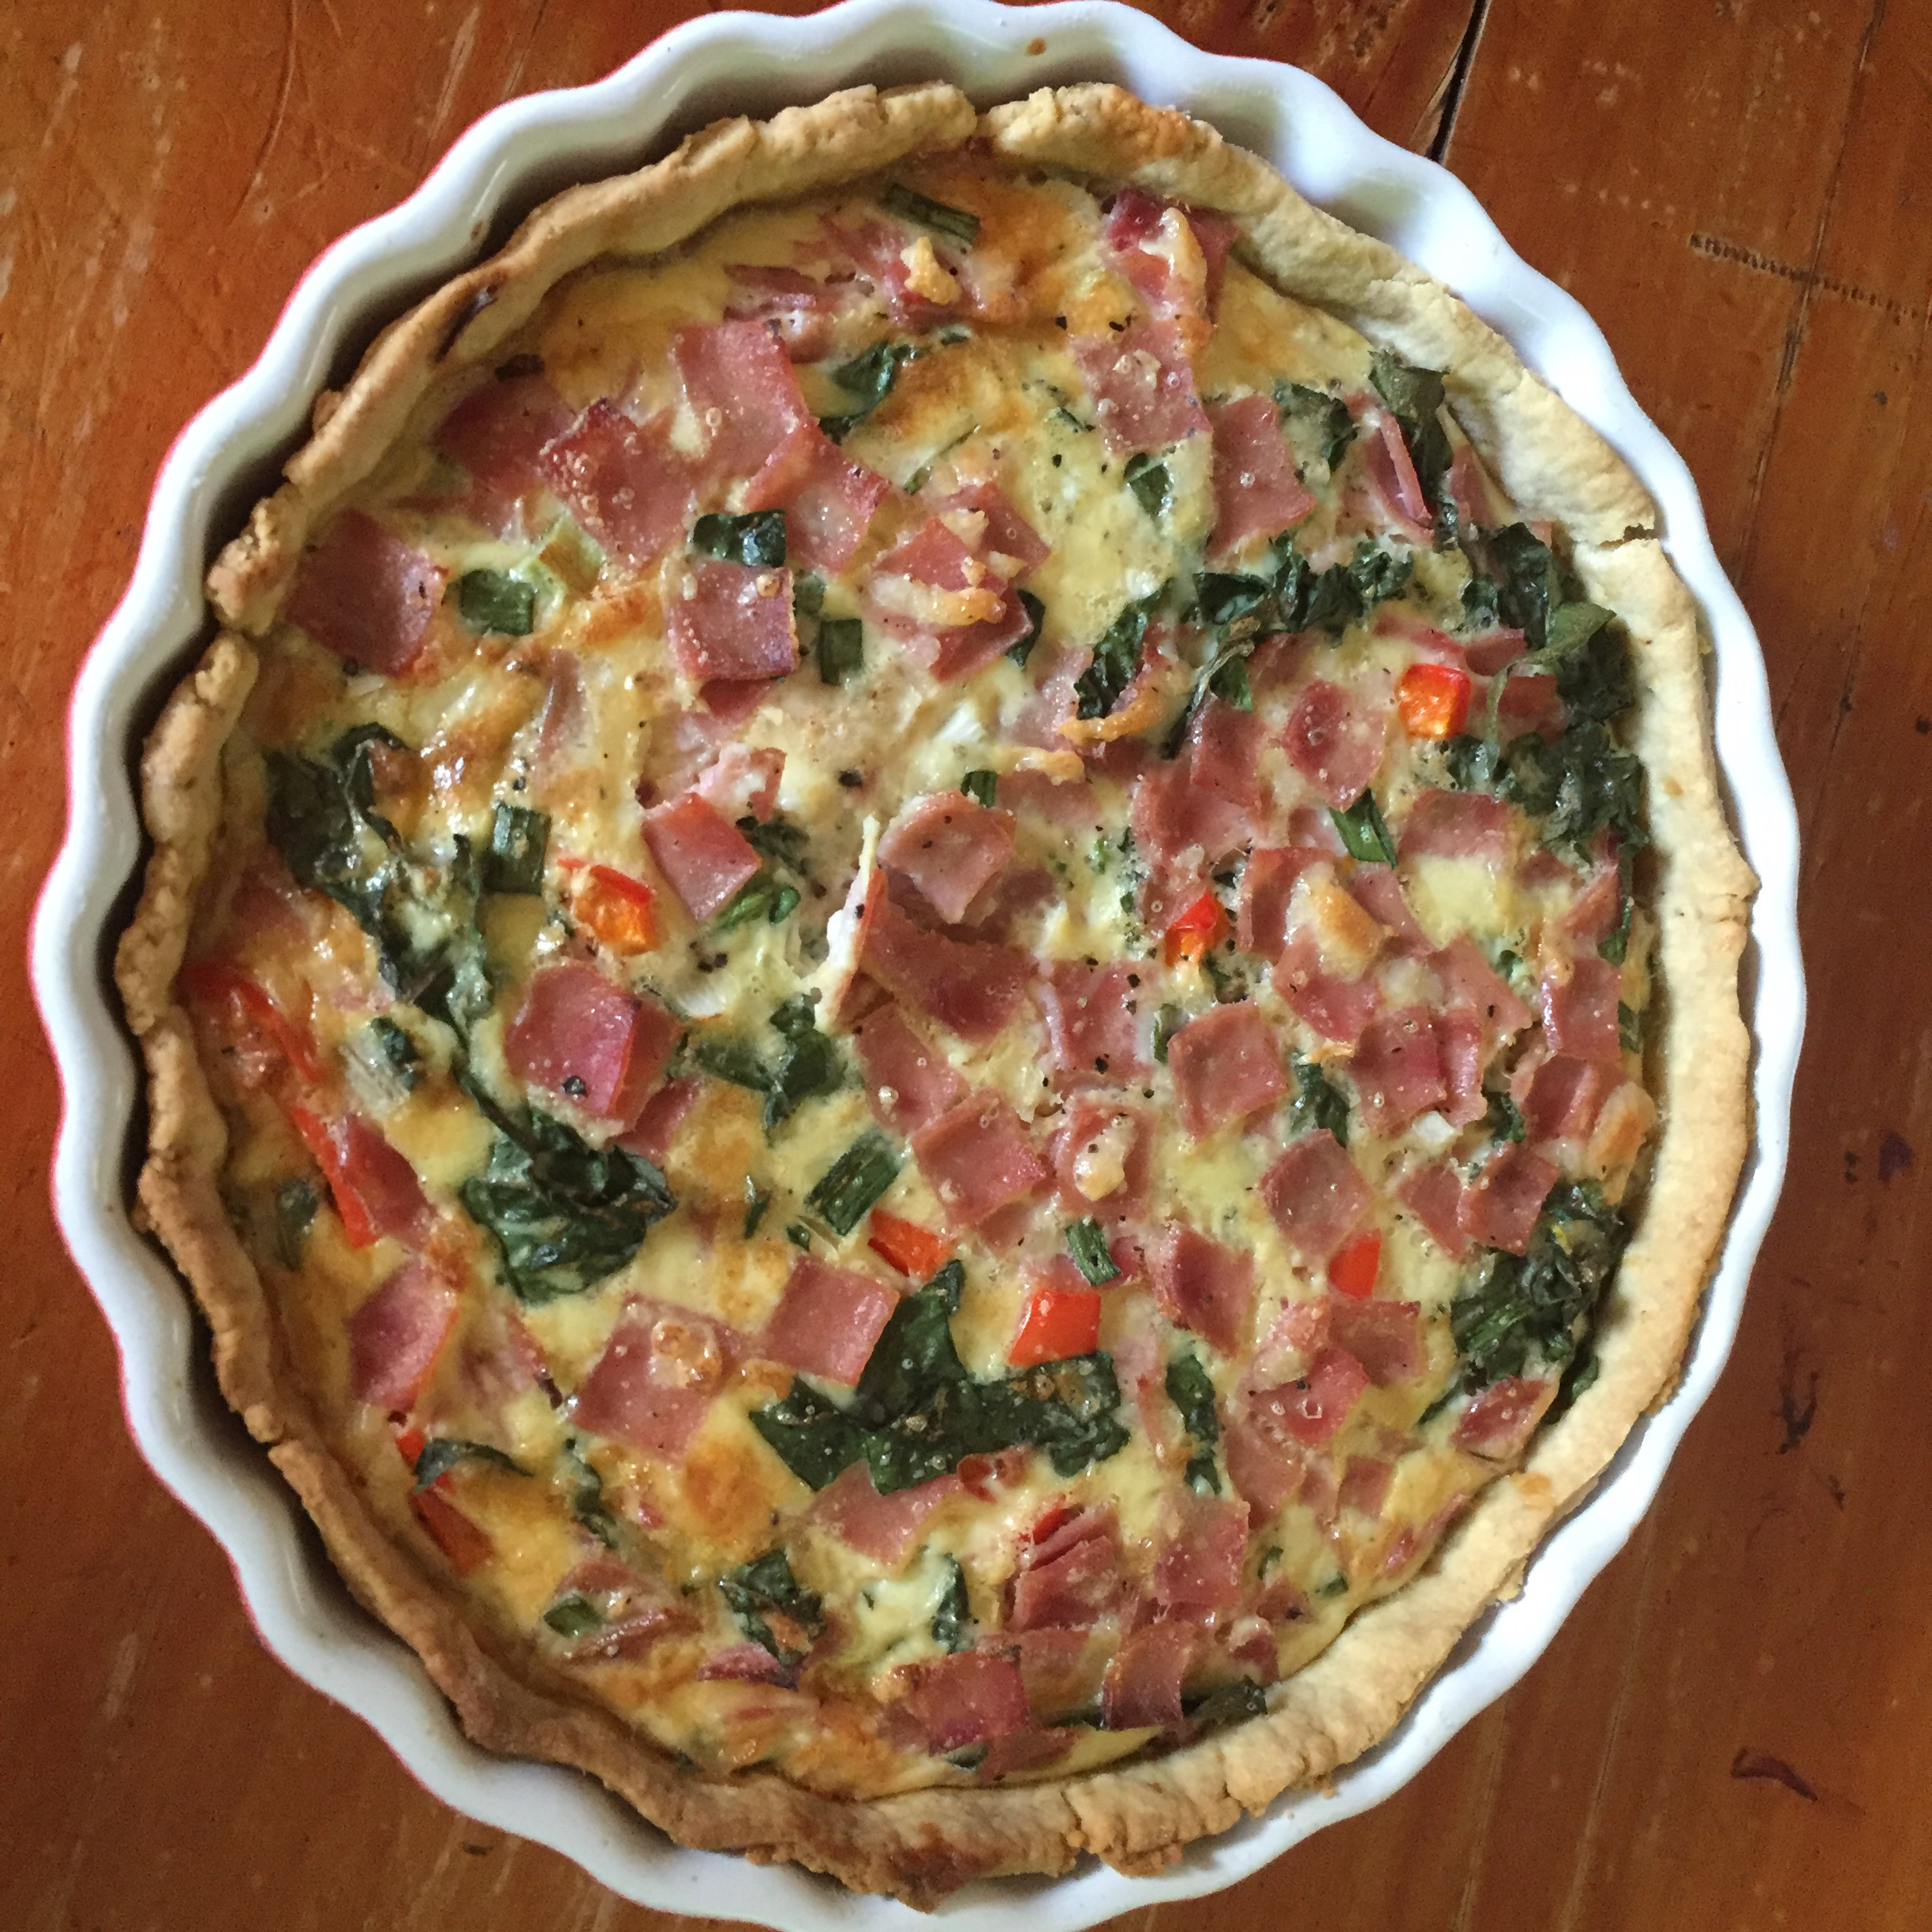 Surimi, Spinach, and Roasted Red Pepper Quiche Elba Barra